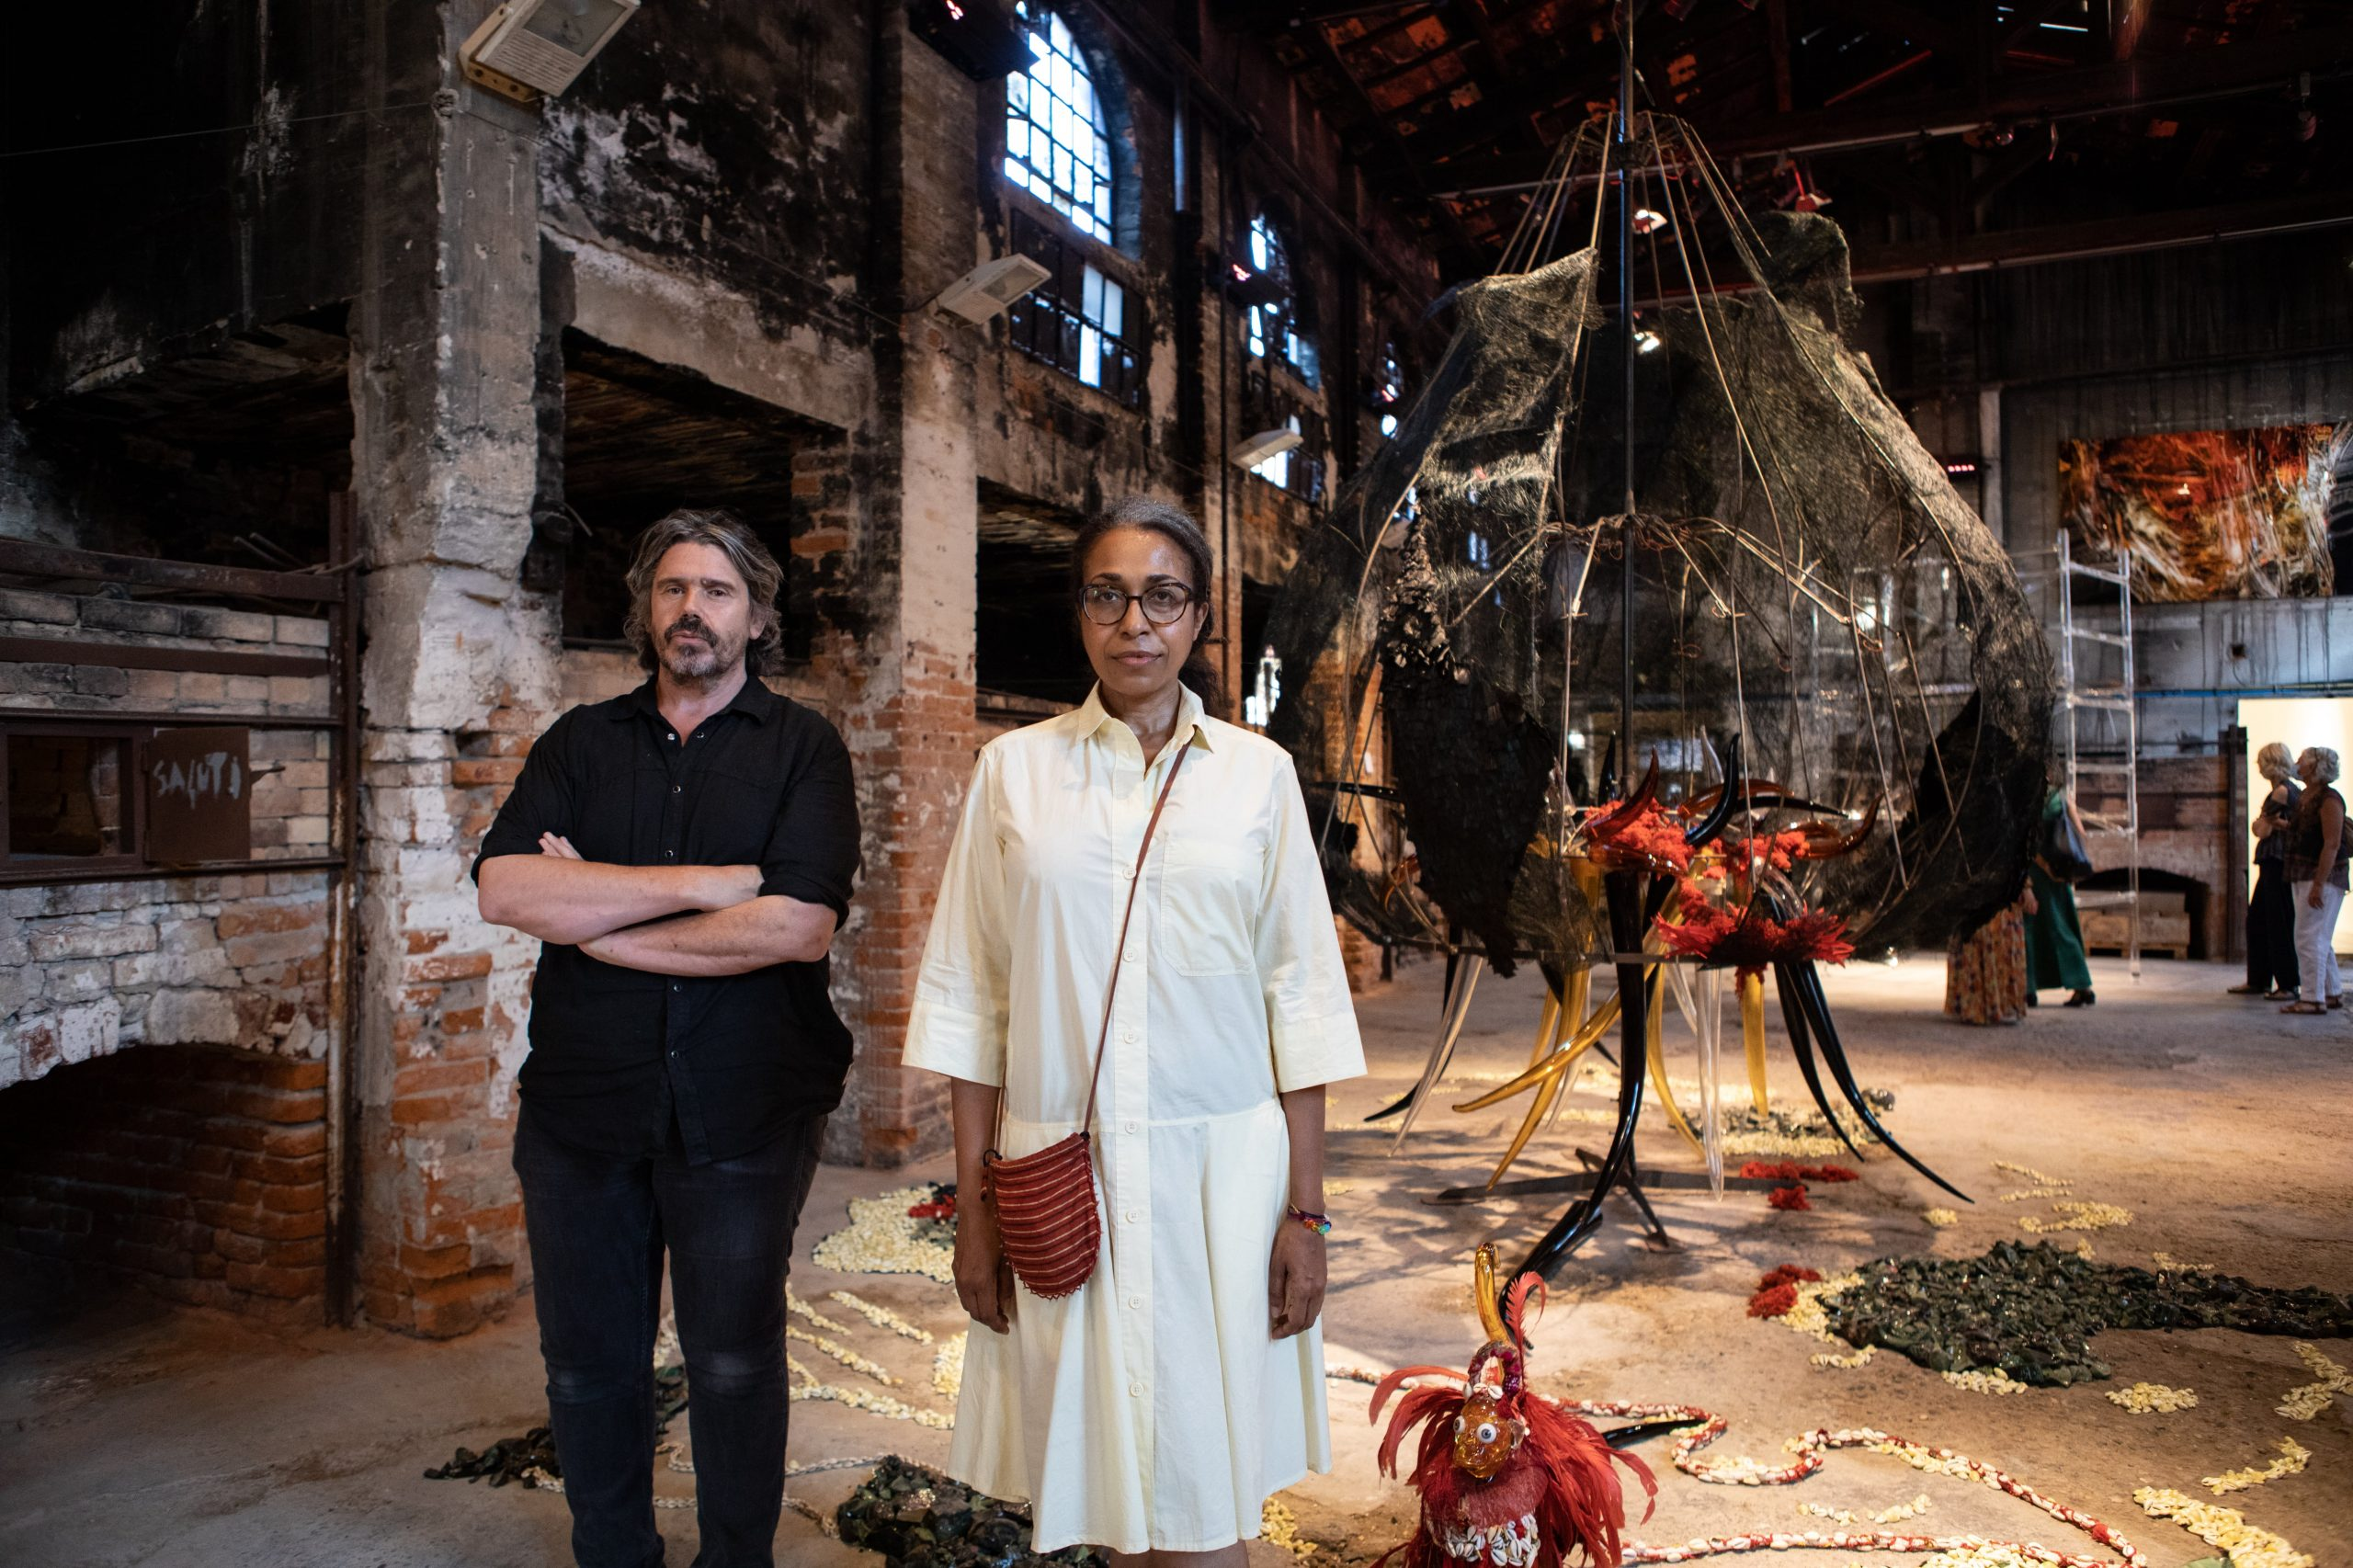 Curators Koen Vanmechelen and Nadjia Romain at Unbreakable: Women in Glass